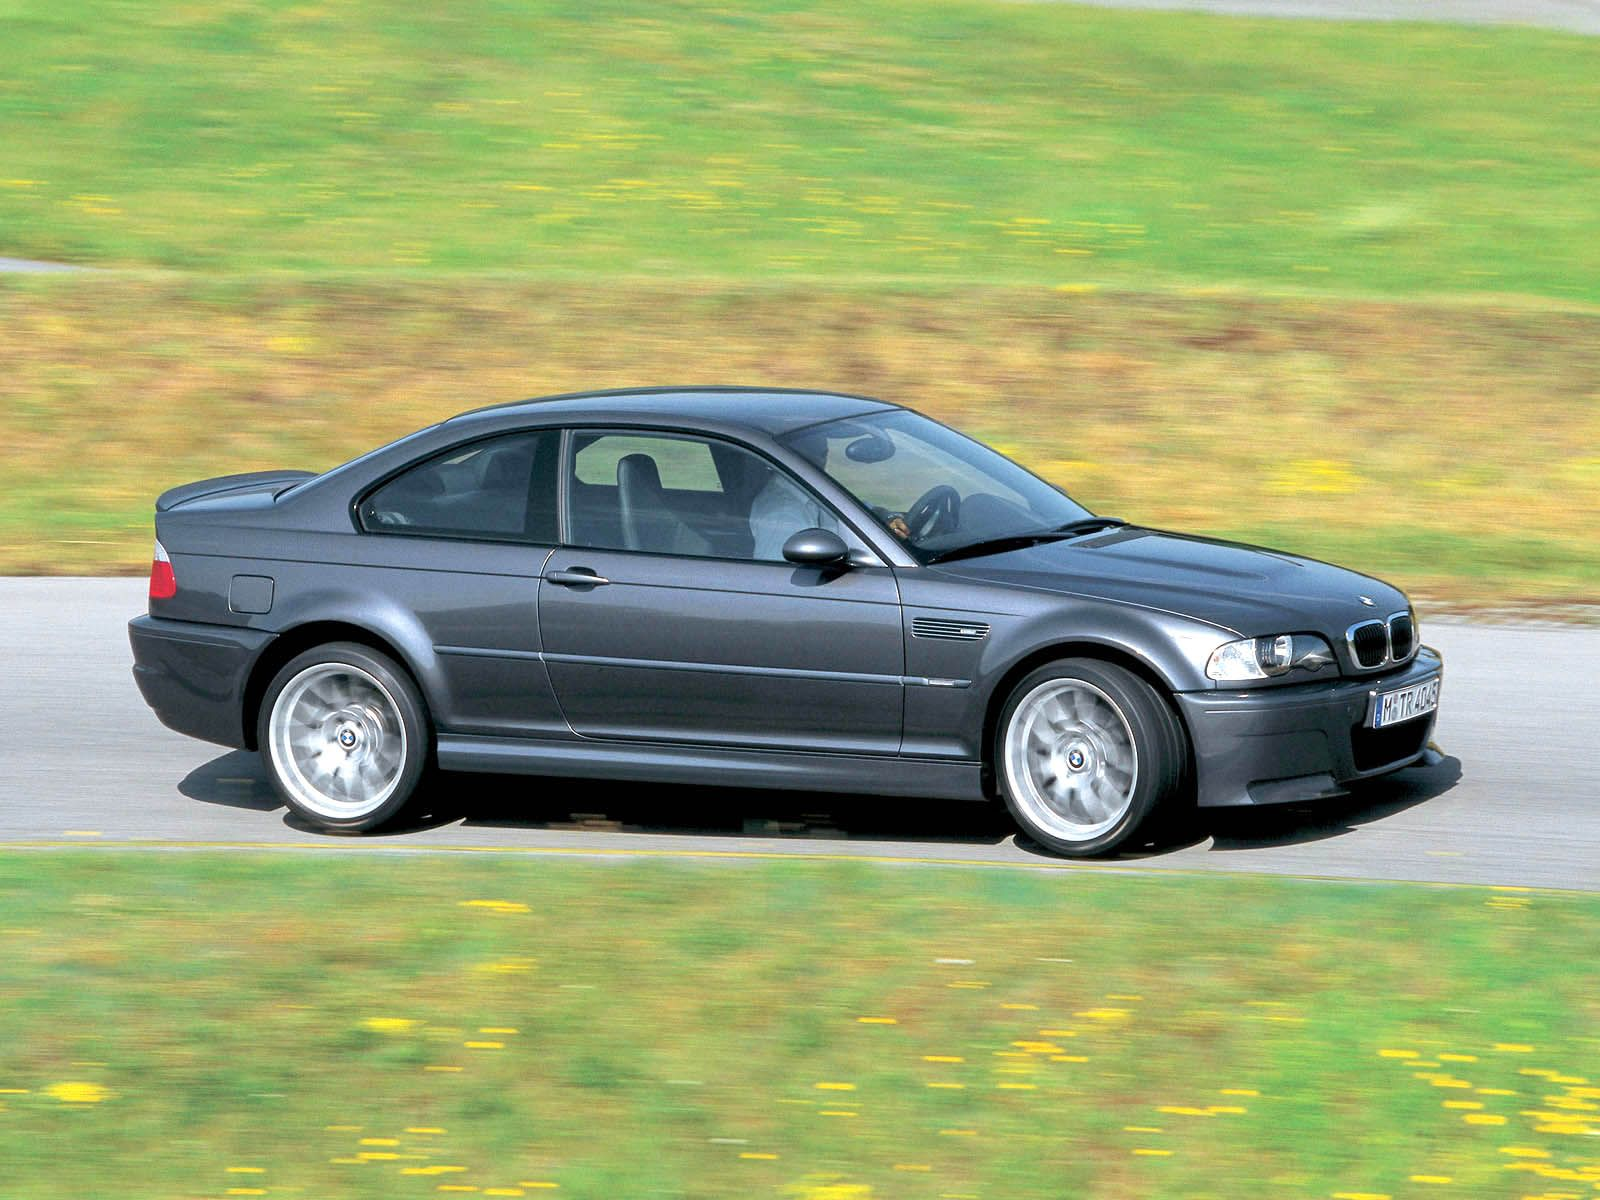 bmw m3 csl picture 10276 bmw photo gallery. Black Bedroom Furniture Sets. Home Design Ideas